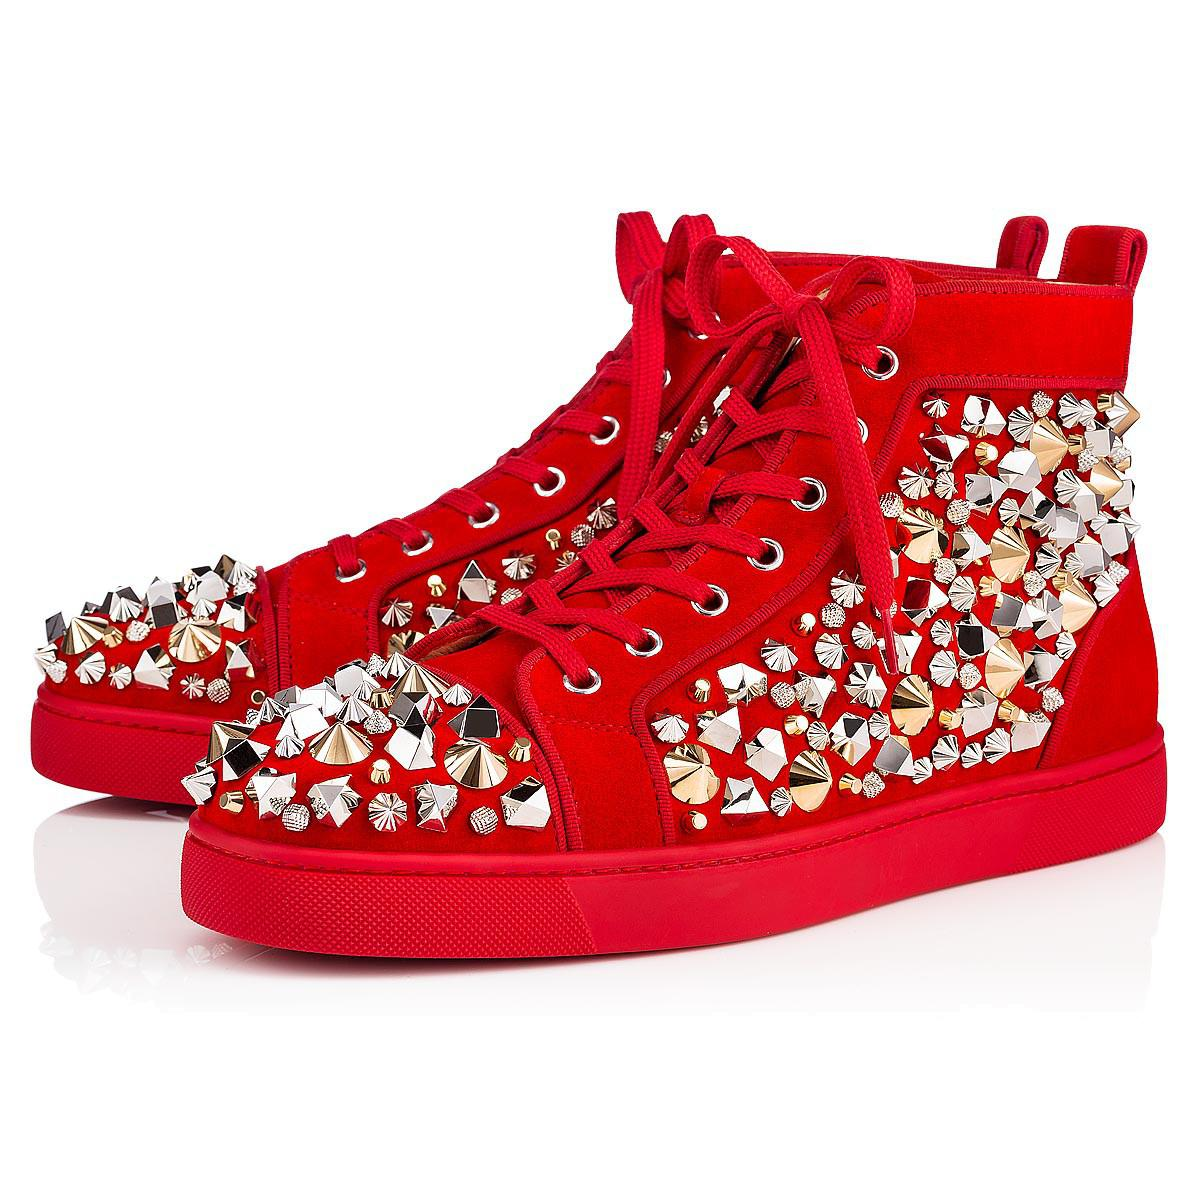 d97cf486e0c0 Lyst - Christian Louboutin Louis Mix Men s Flat in Red for Men